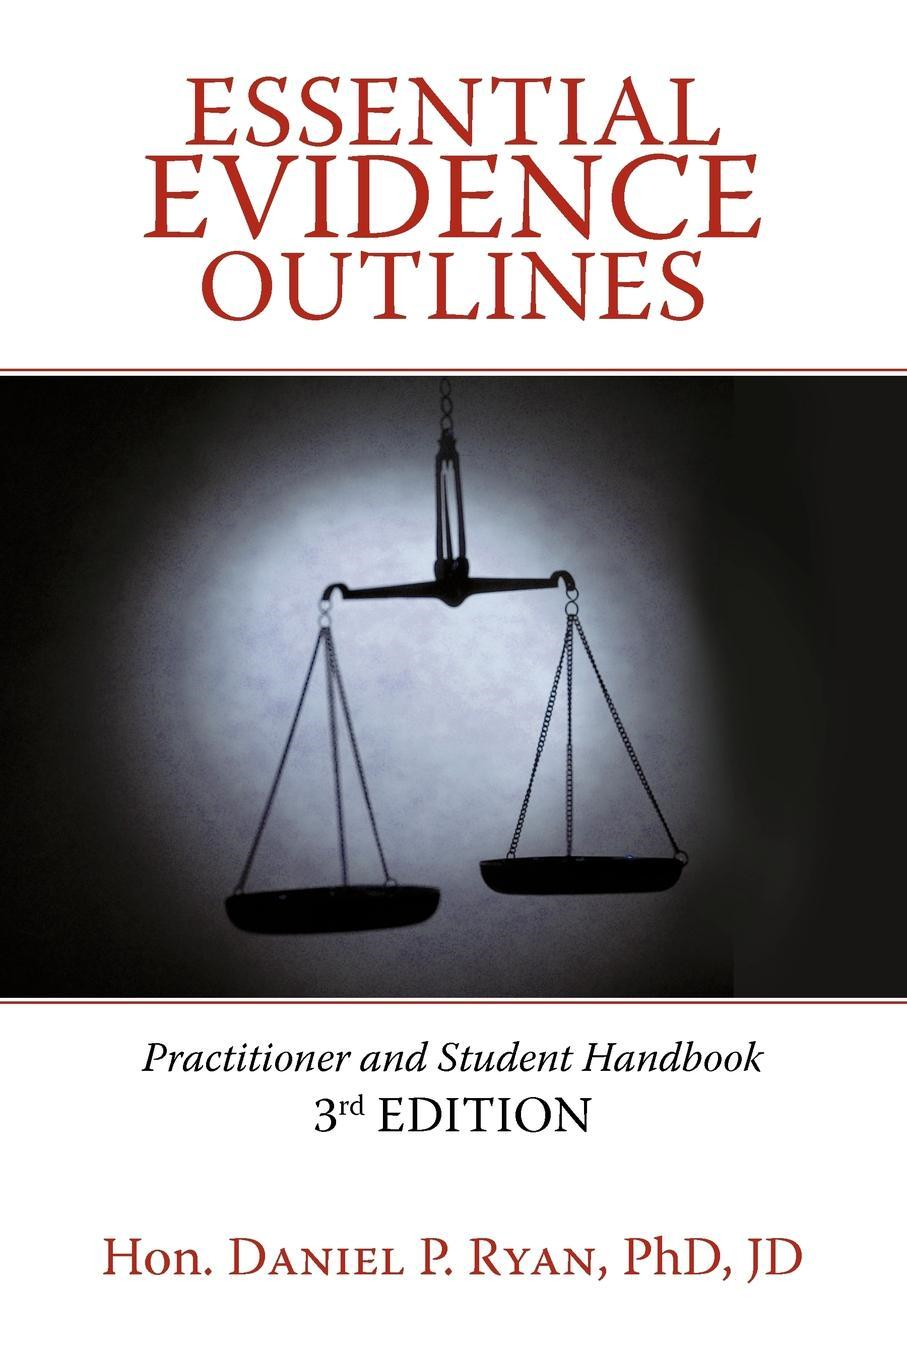 Essential Evidence Outlines: Practitioner and Student Handbook, 3rd Edition